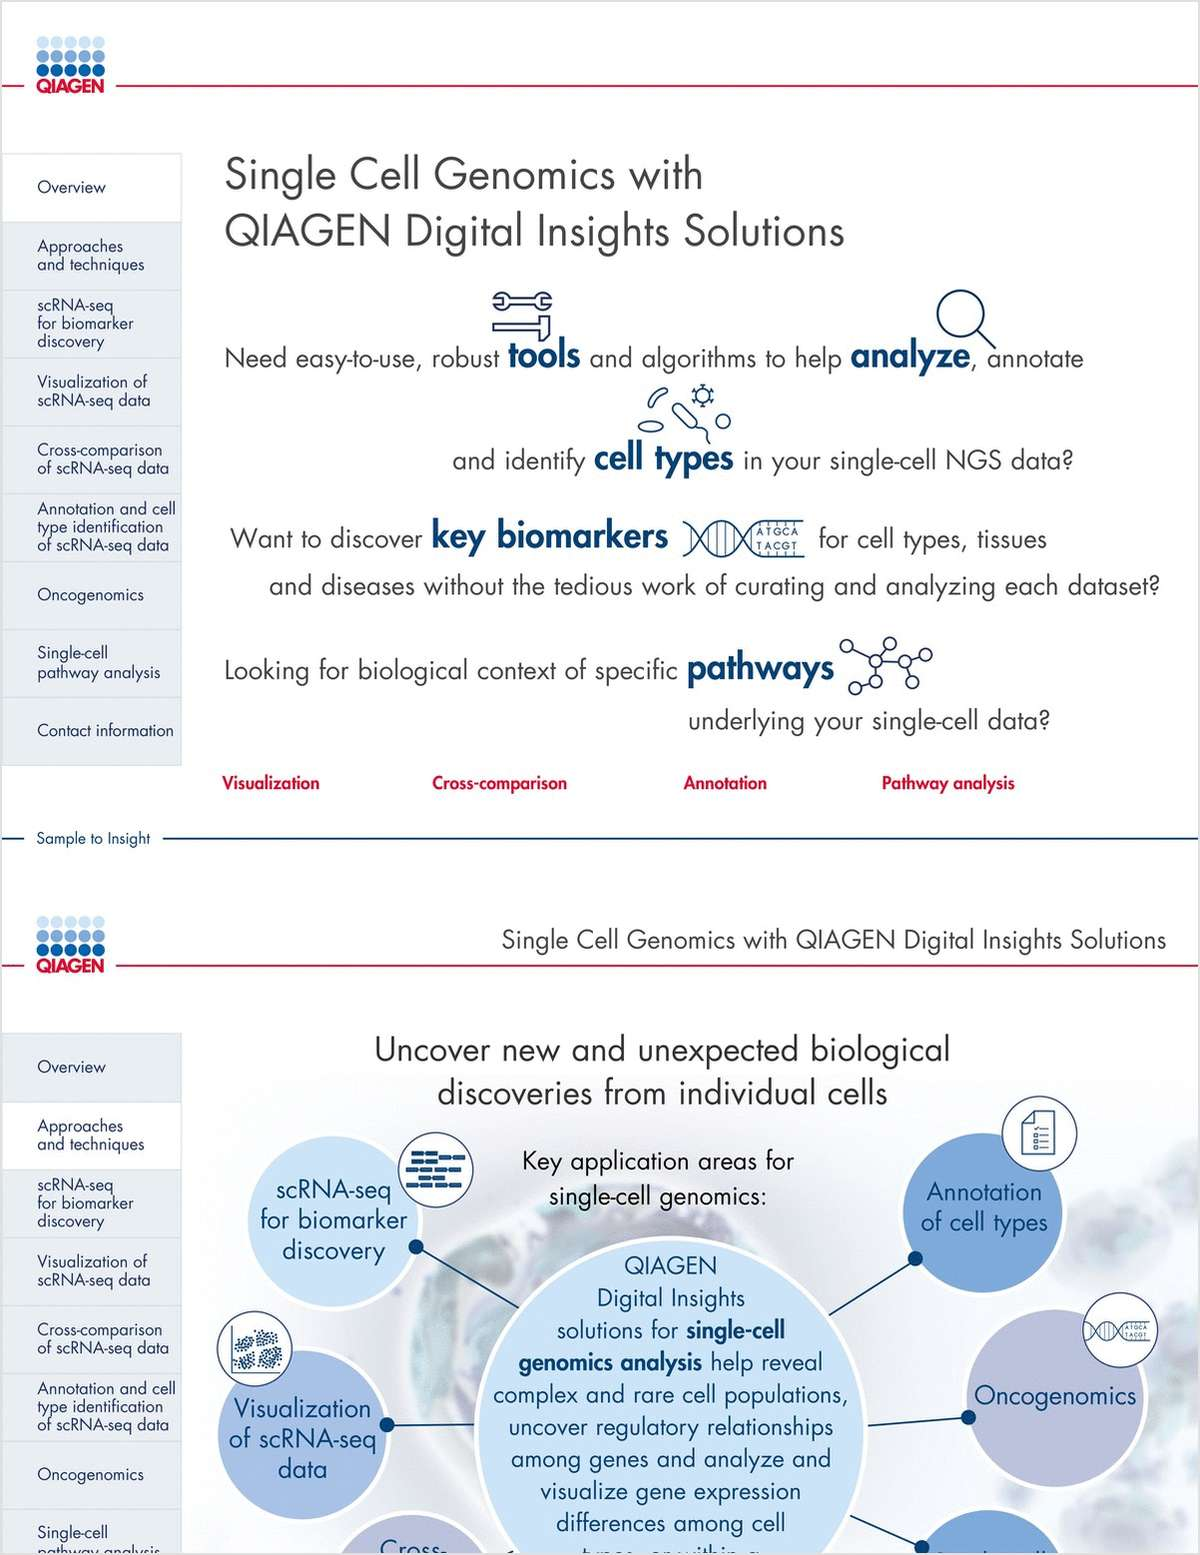 Single-Cell Genomics with Qiagen Digital Insights Solutions